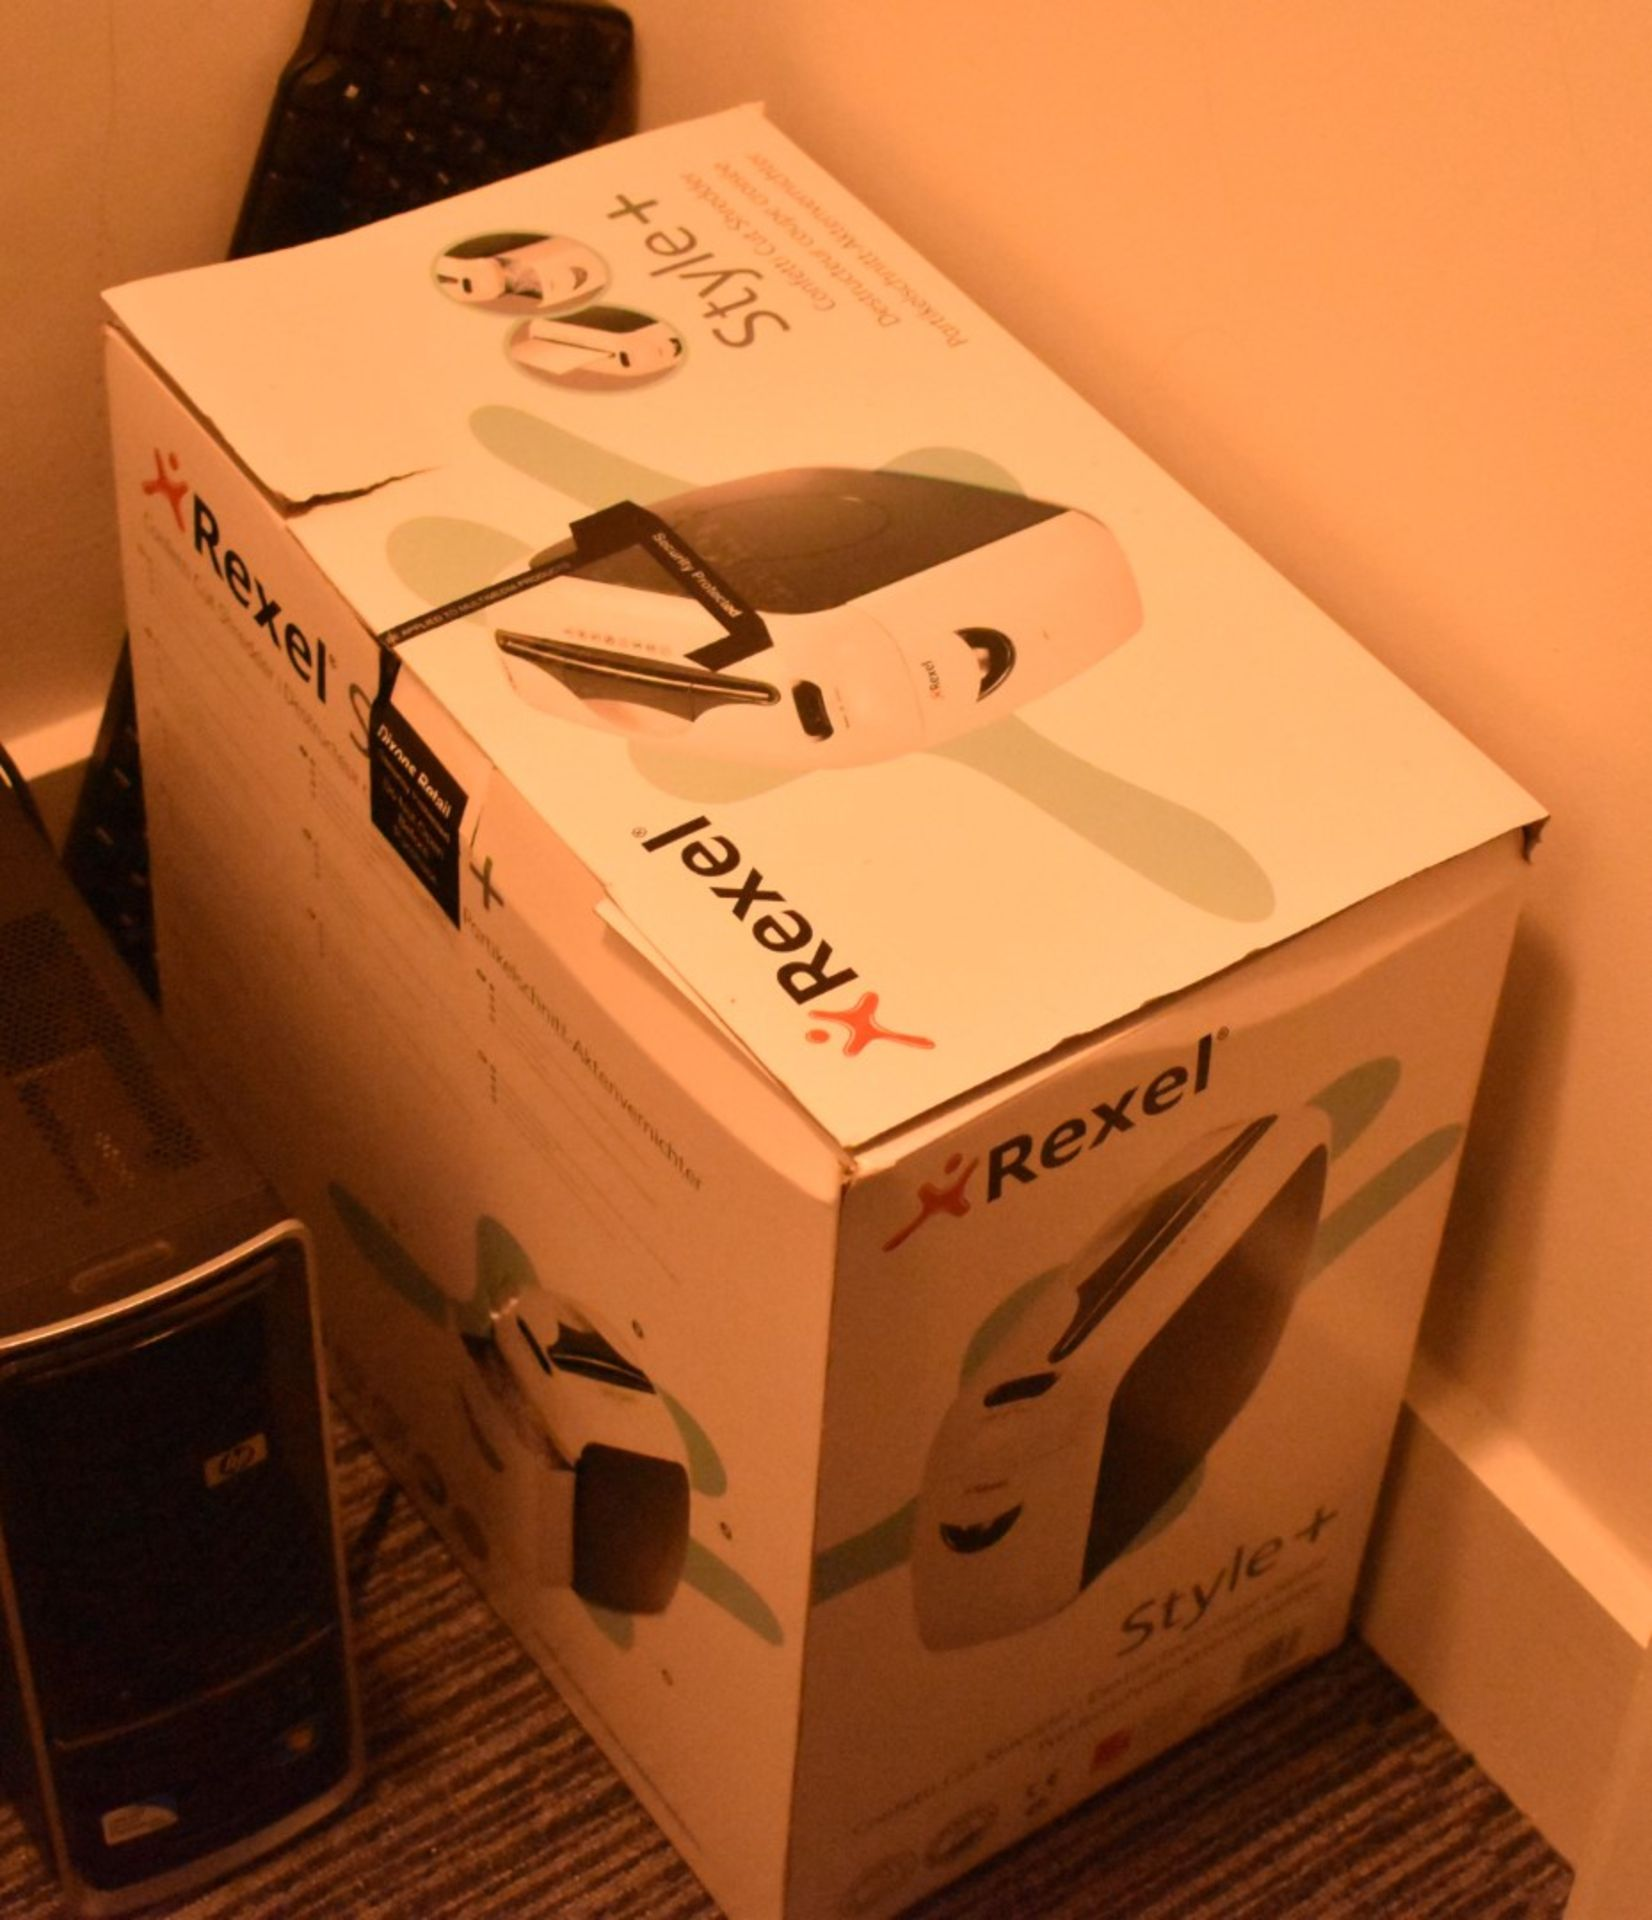 Lot 88 - 1 x Rexel Style+ Office Paper Shredder With Original Box - Ref 336 - CL501 - Location: Warrington